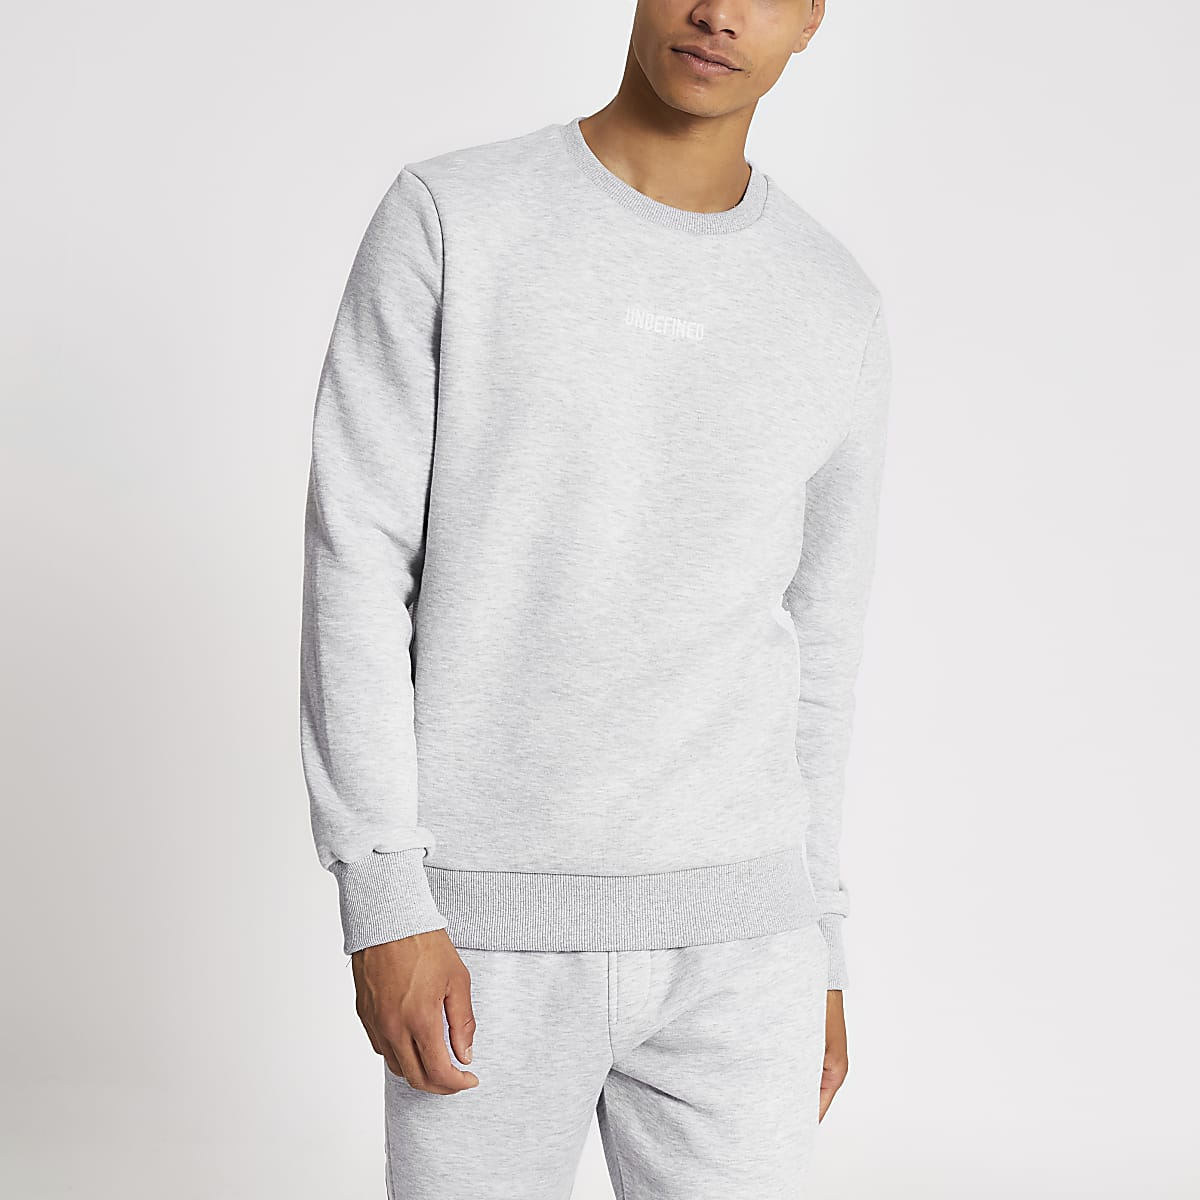 Grey 'Undefined' embroidered tape sweatshirt